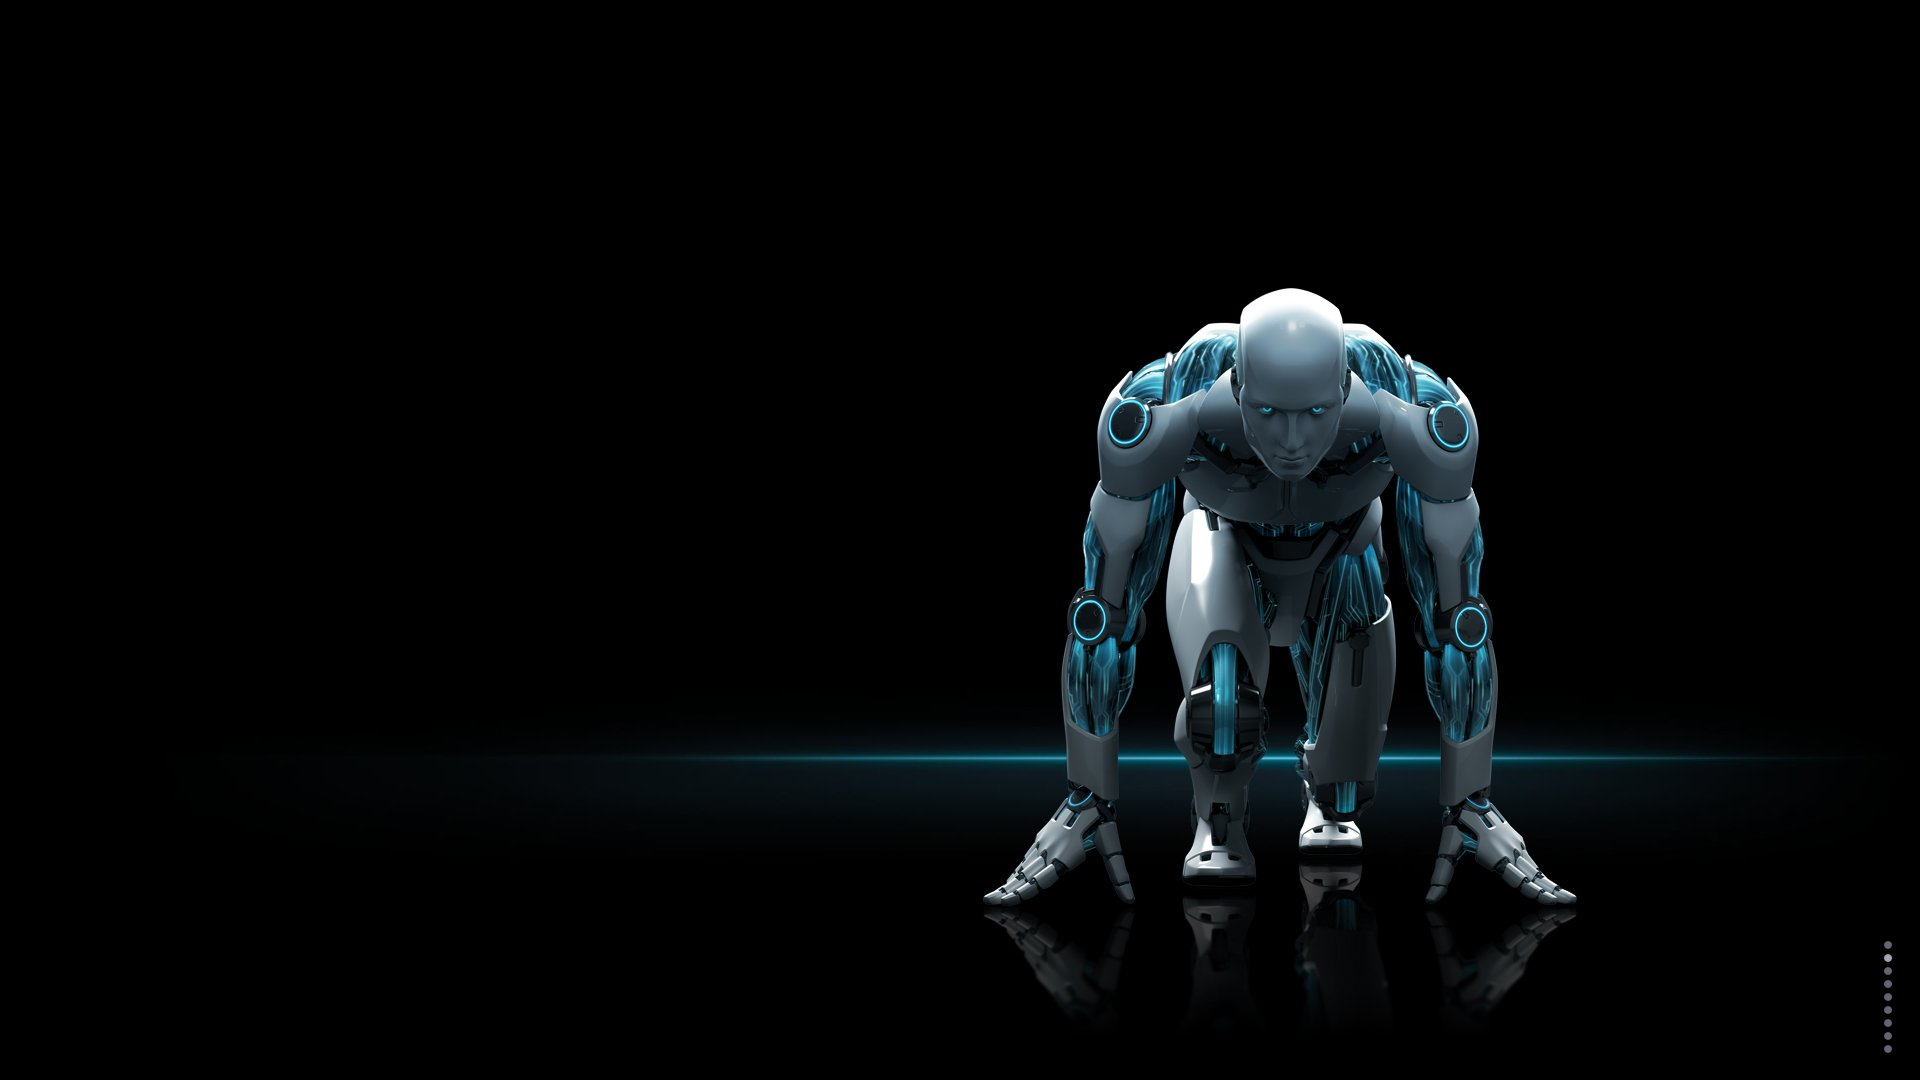 Robot Sci Fi Wallpaper Background 40614 1920x1080